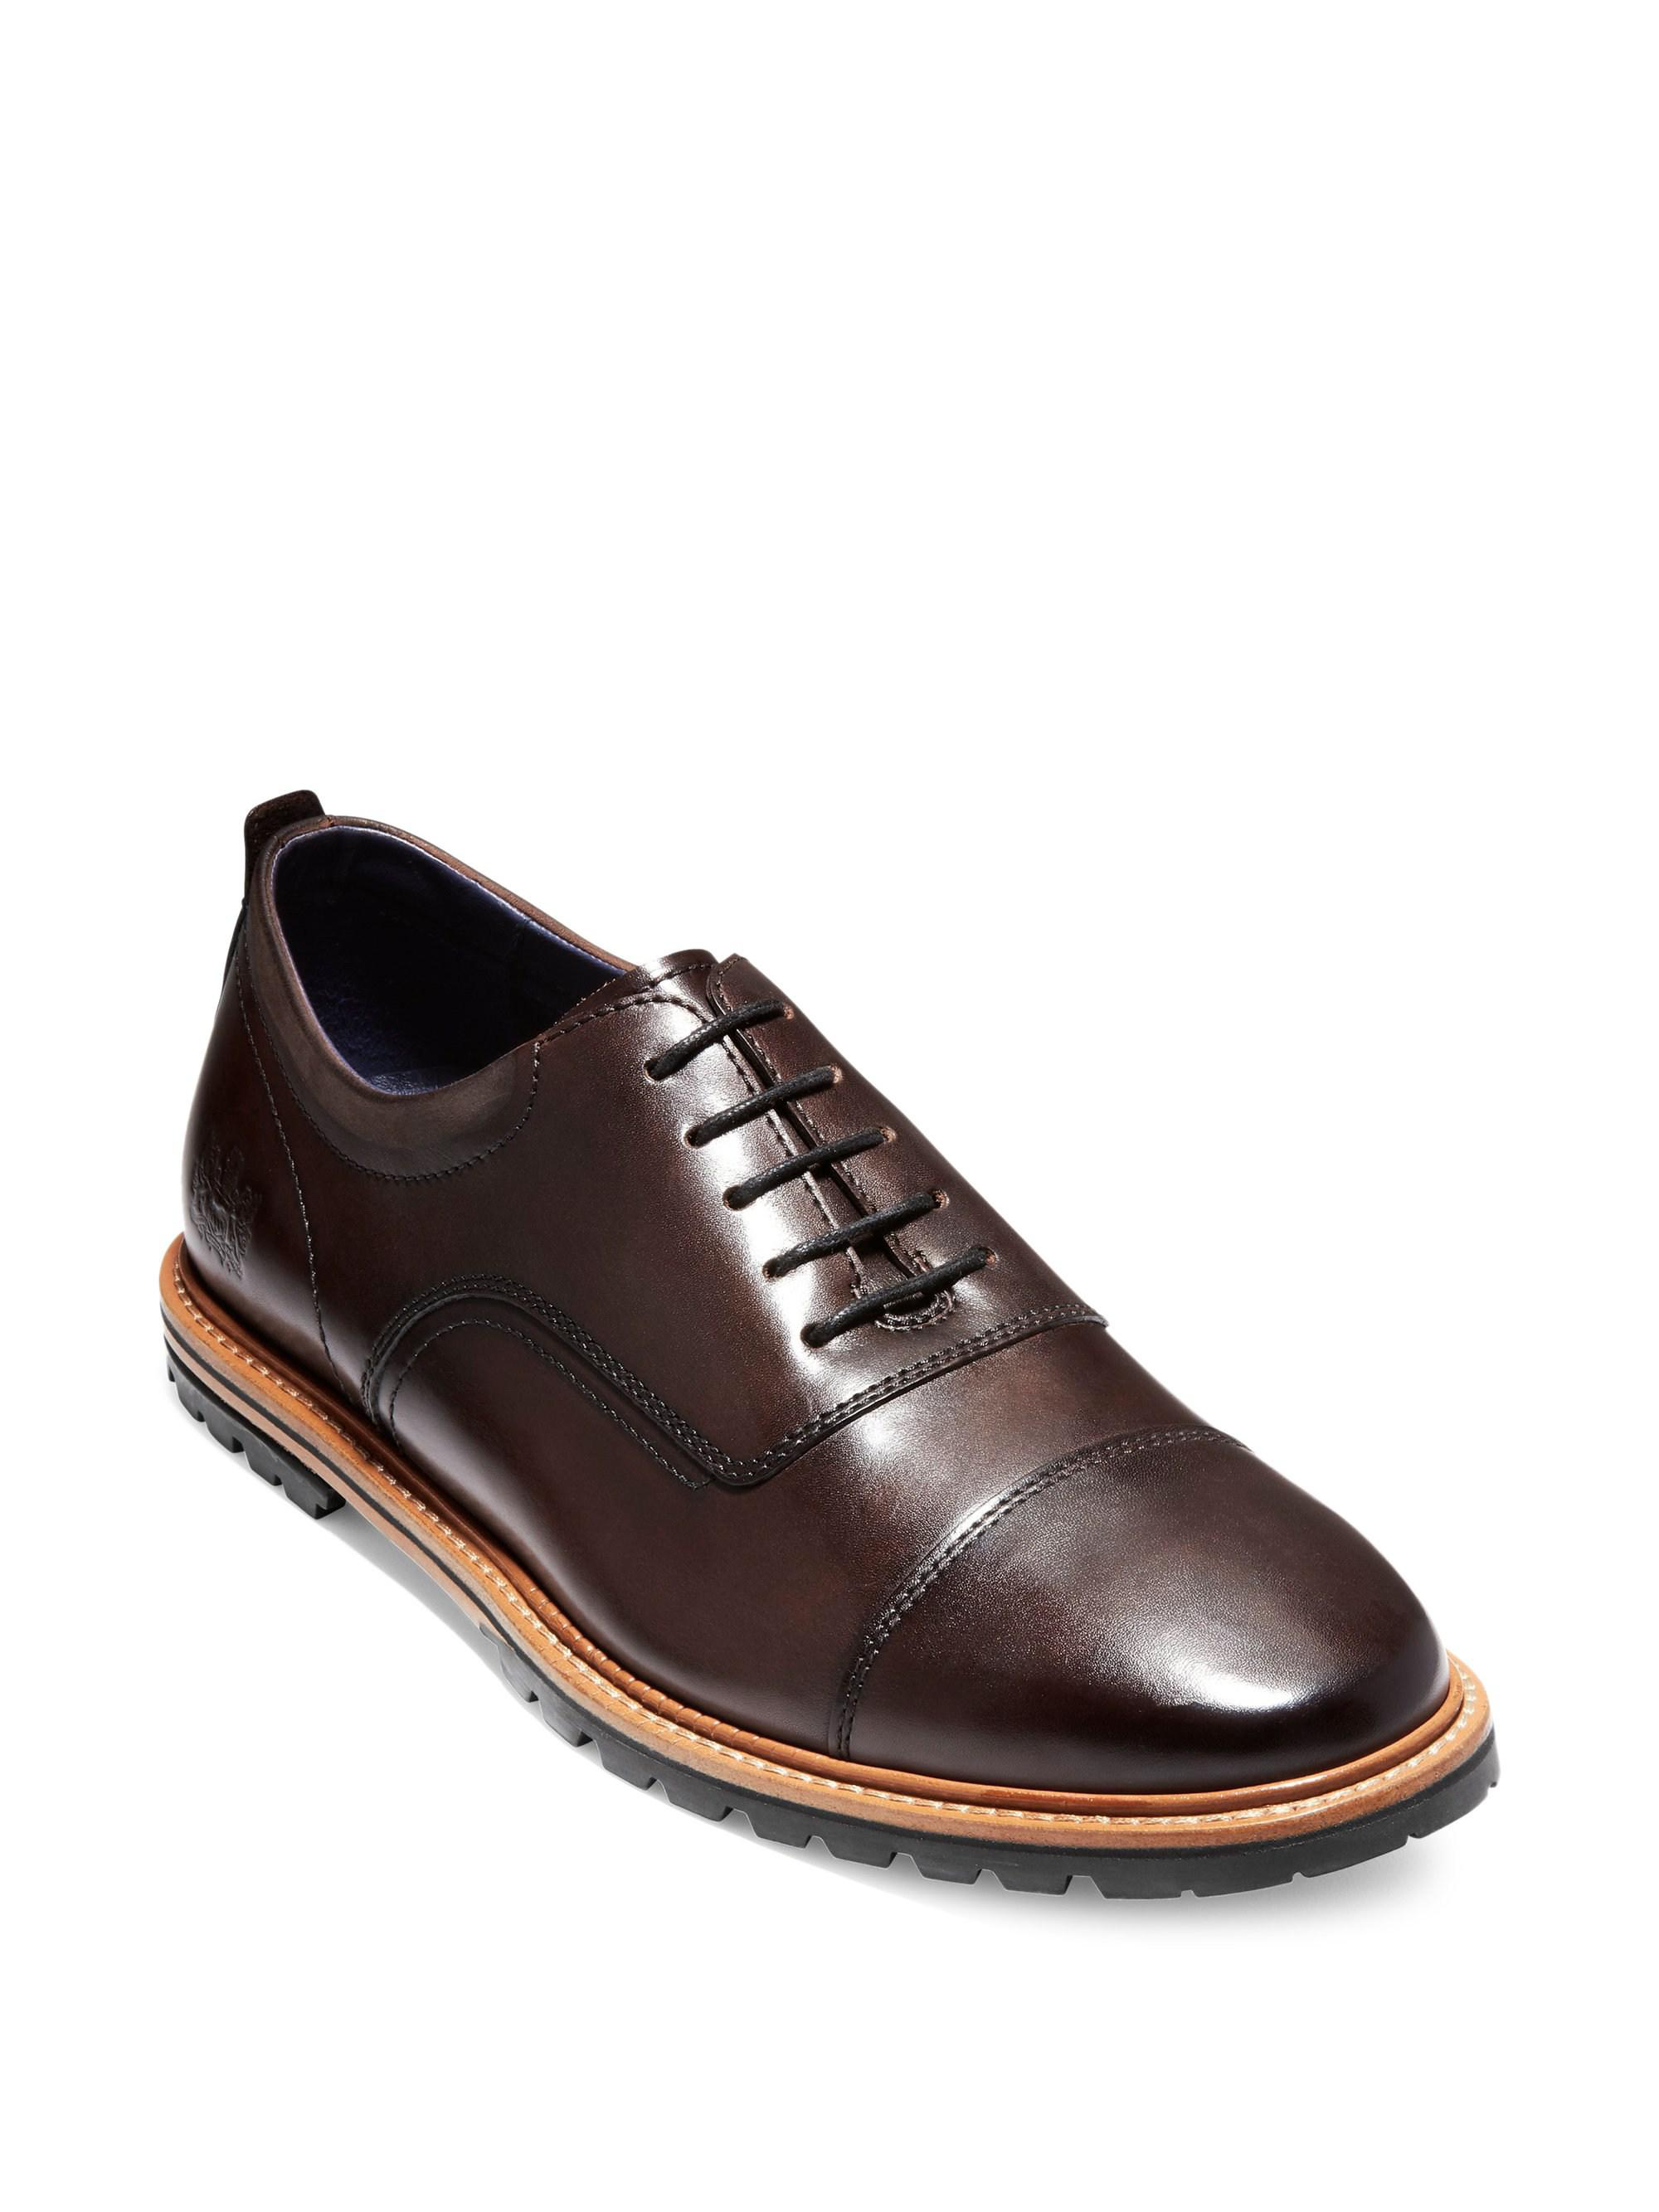 15d0a9ed4d6 Lyst - Cole Haan Raymond Grand Cap Toe Oxfords in Brown for Men